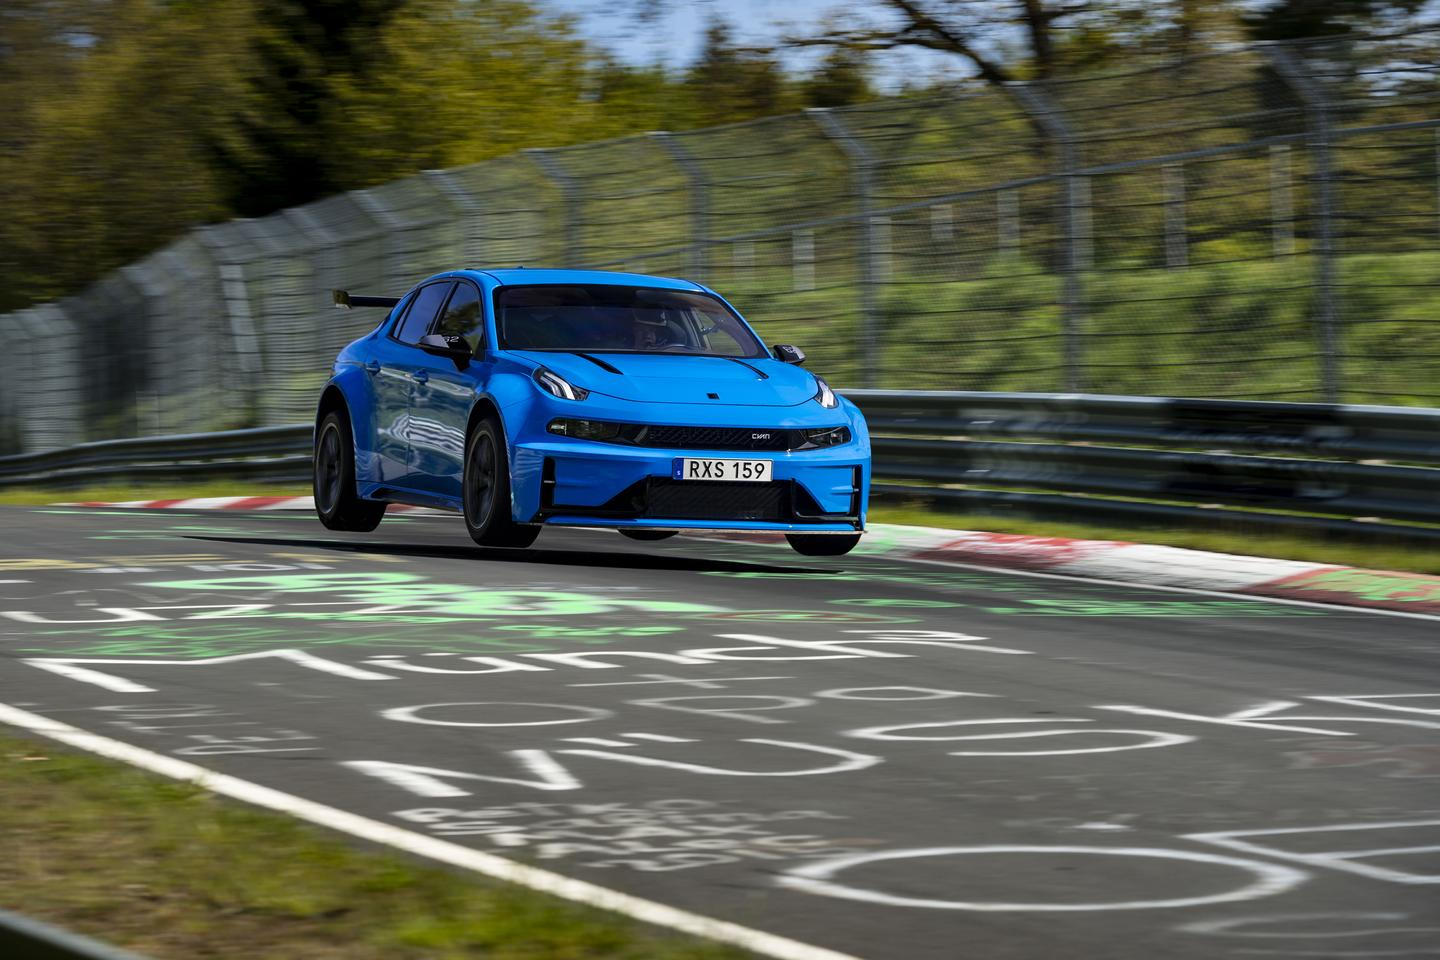 China's Cyan Racing has taken to the tarmac of Nürburgring and come out the other side as the holder of two new records